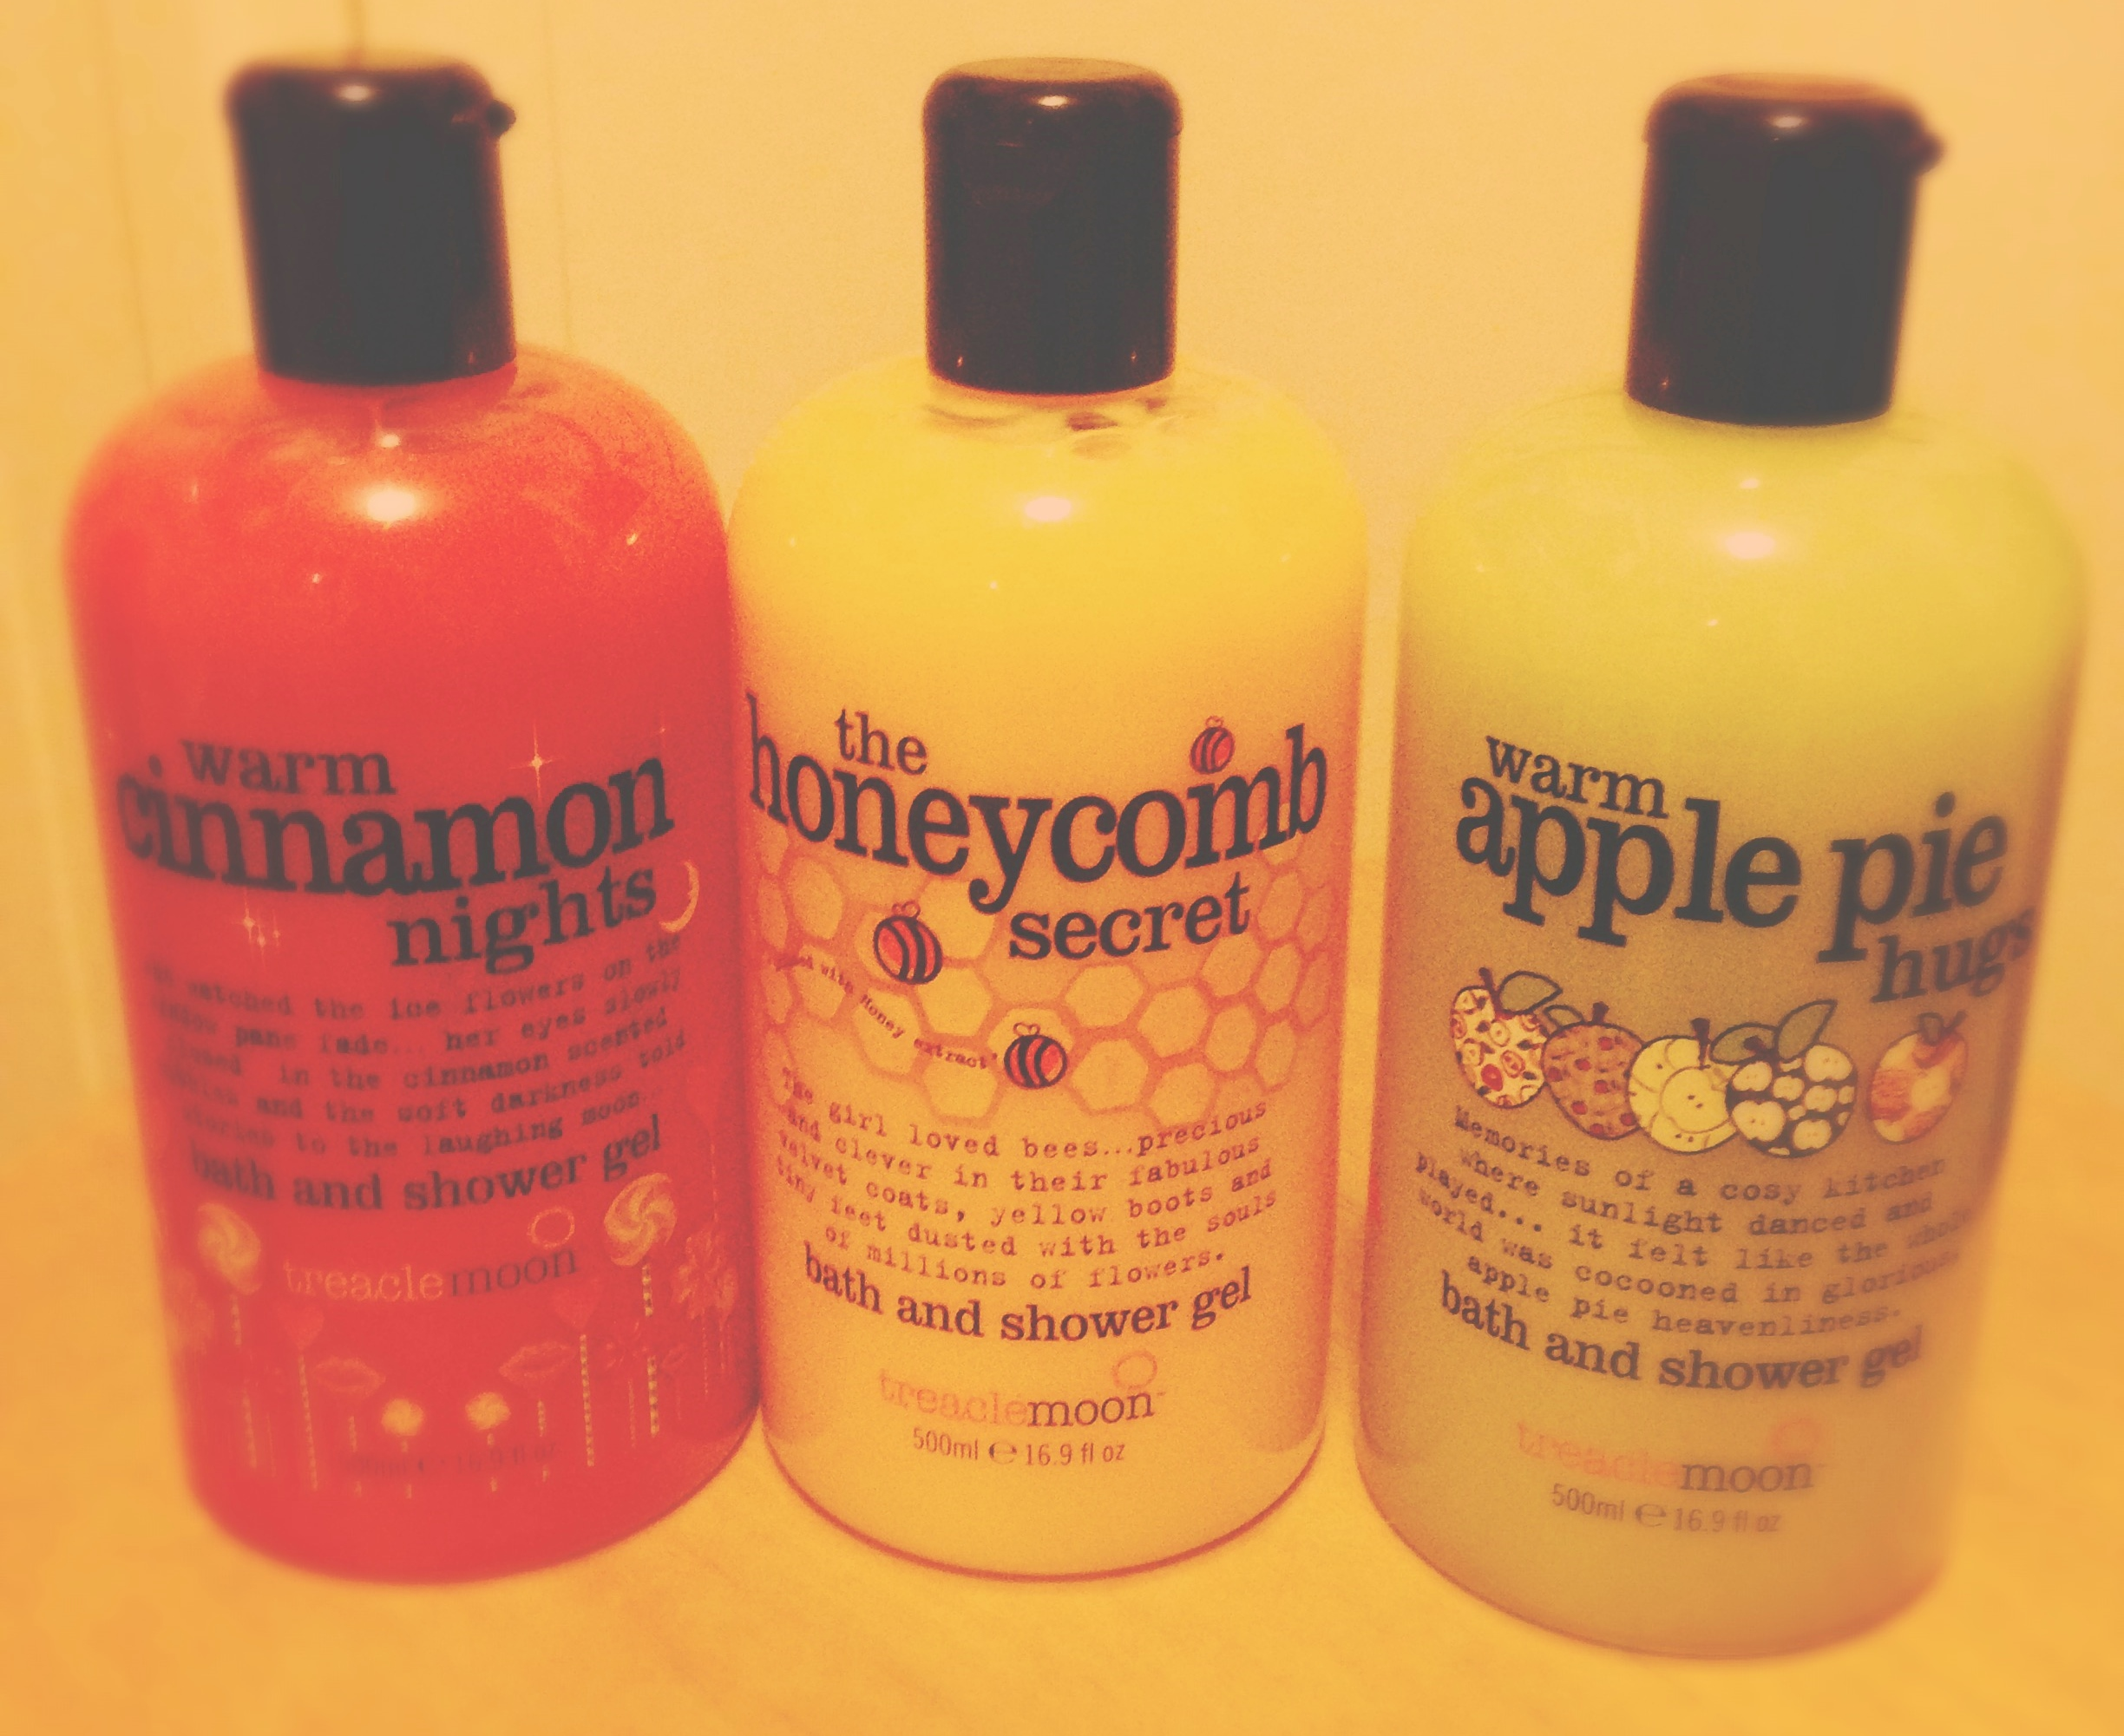 Who'd have thought I'd find some new favourite bath products in ...